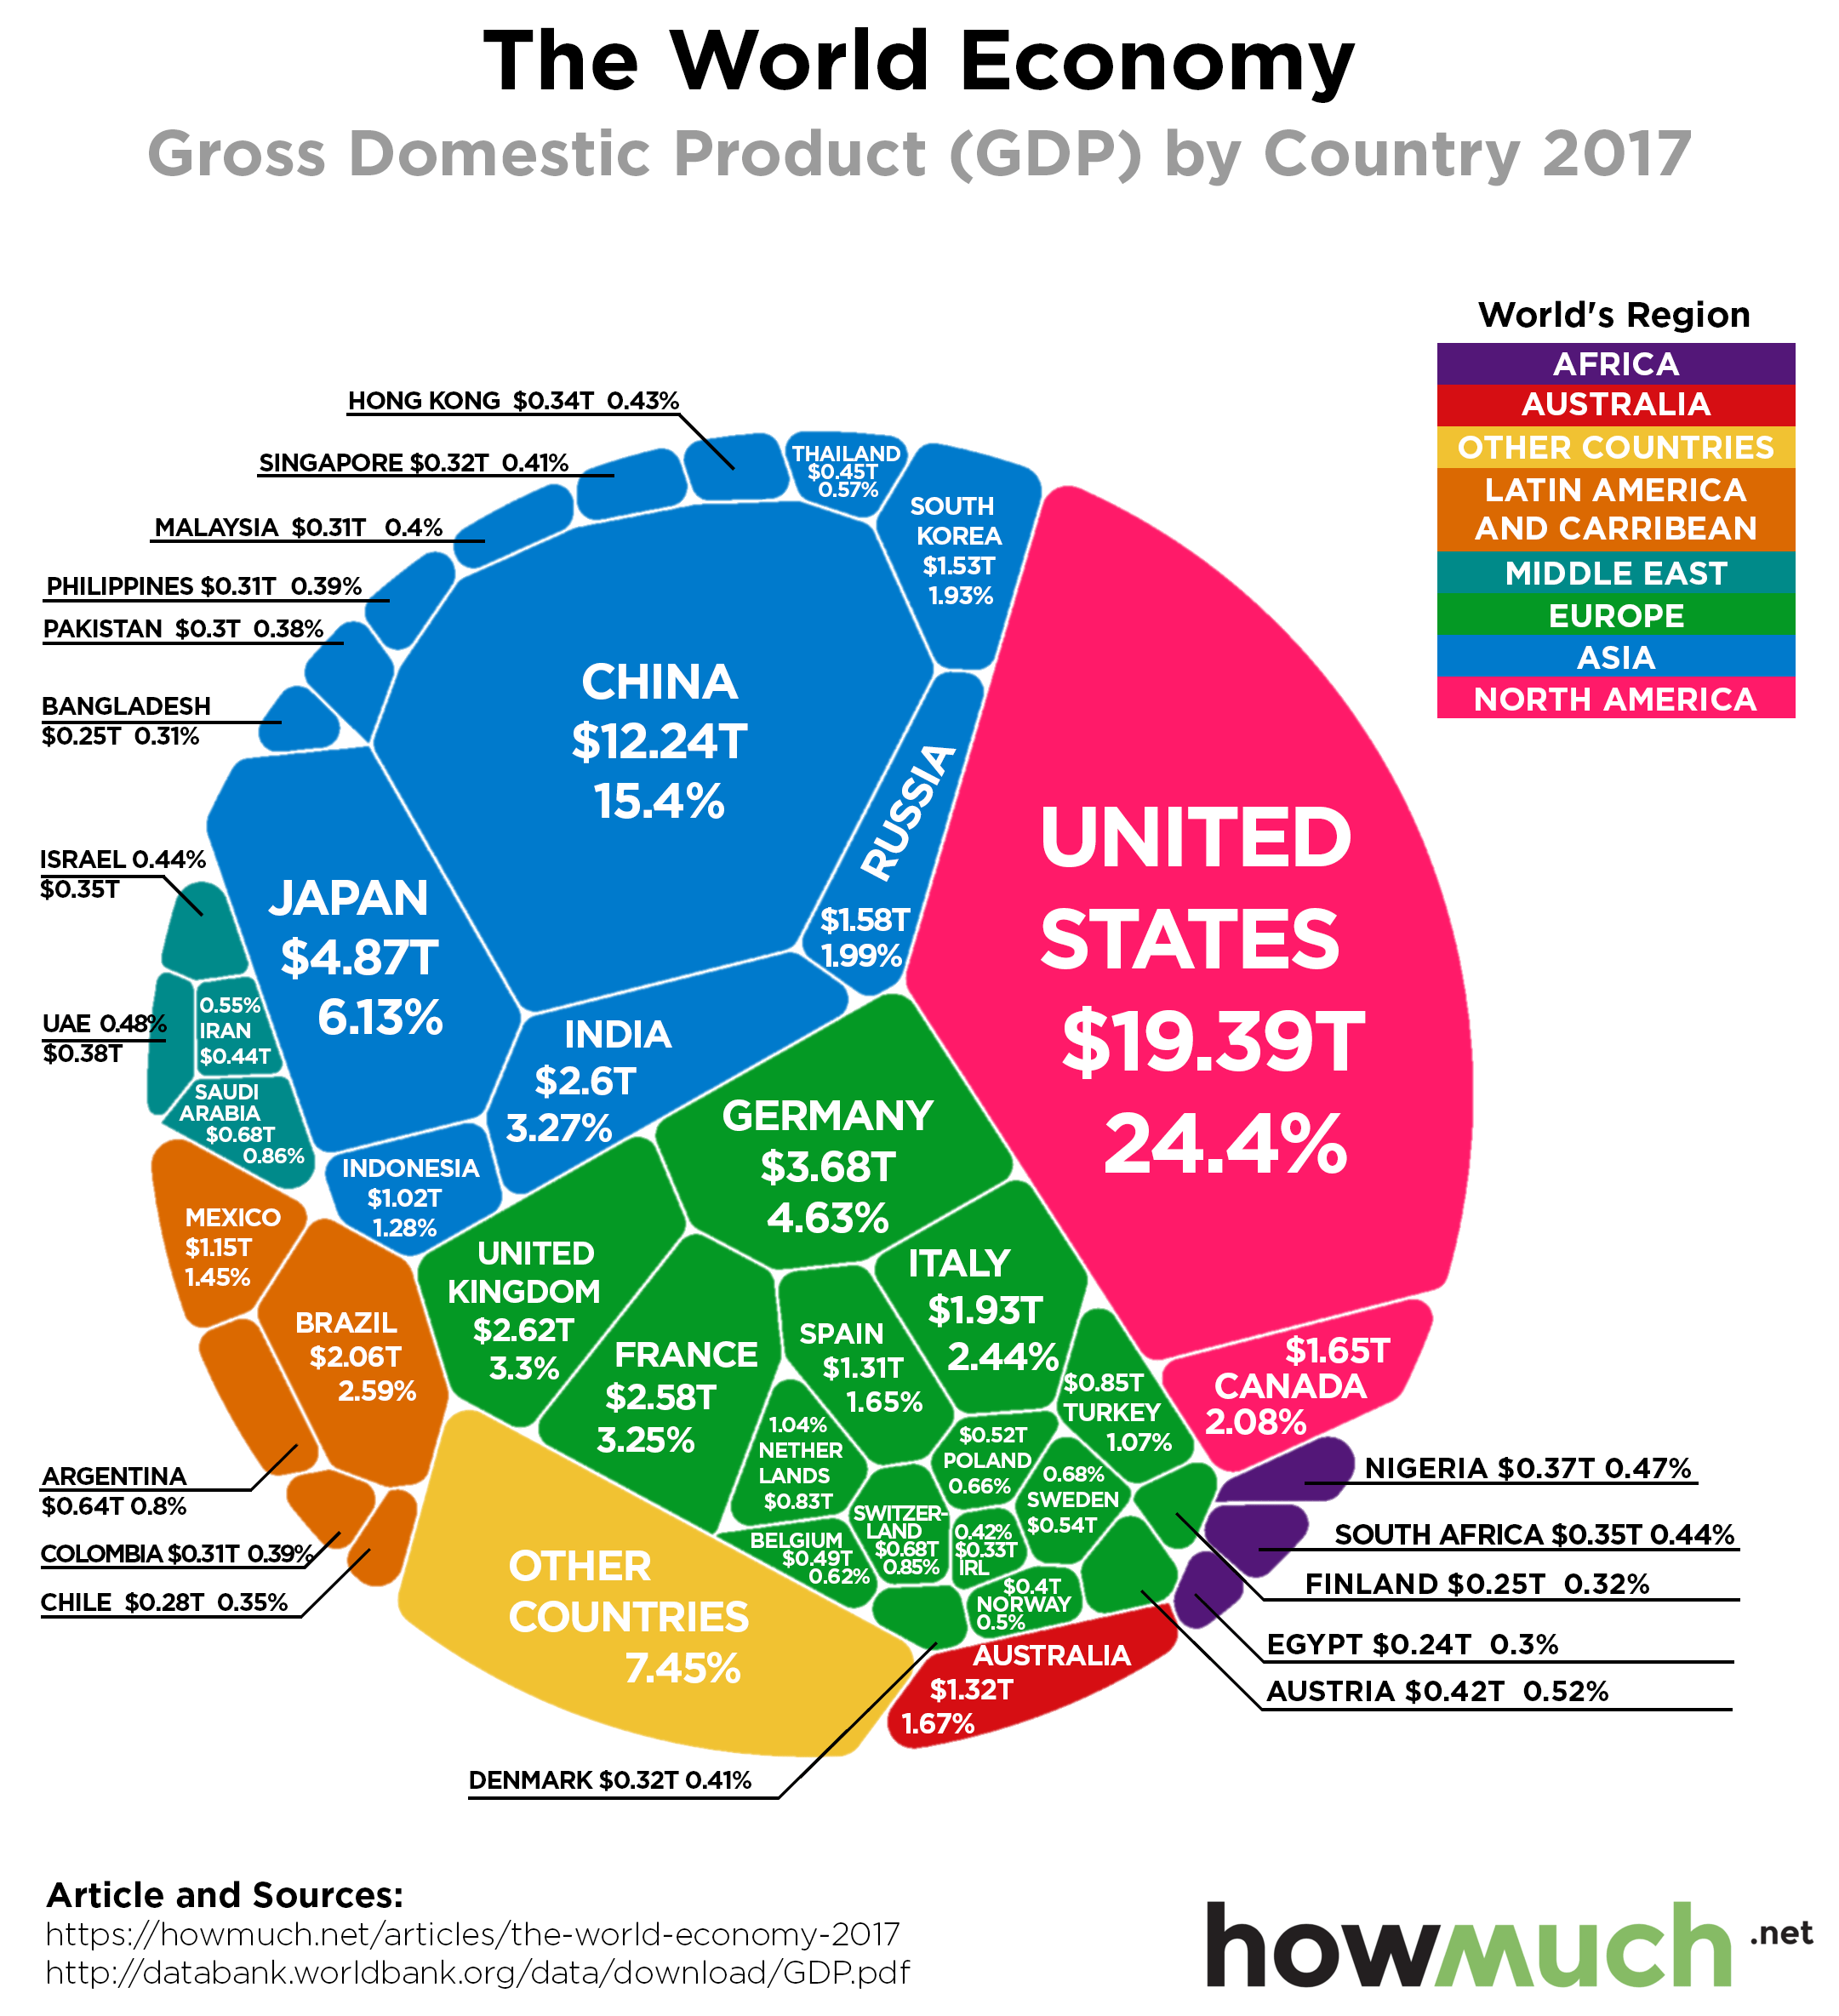 world-economy-by-gdp-2017-7c32